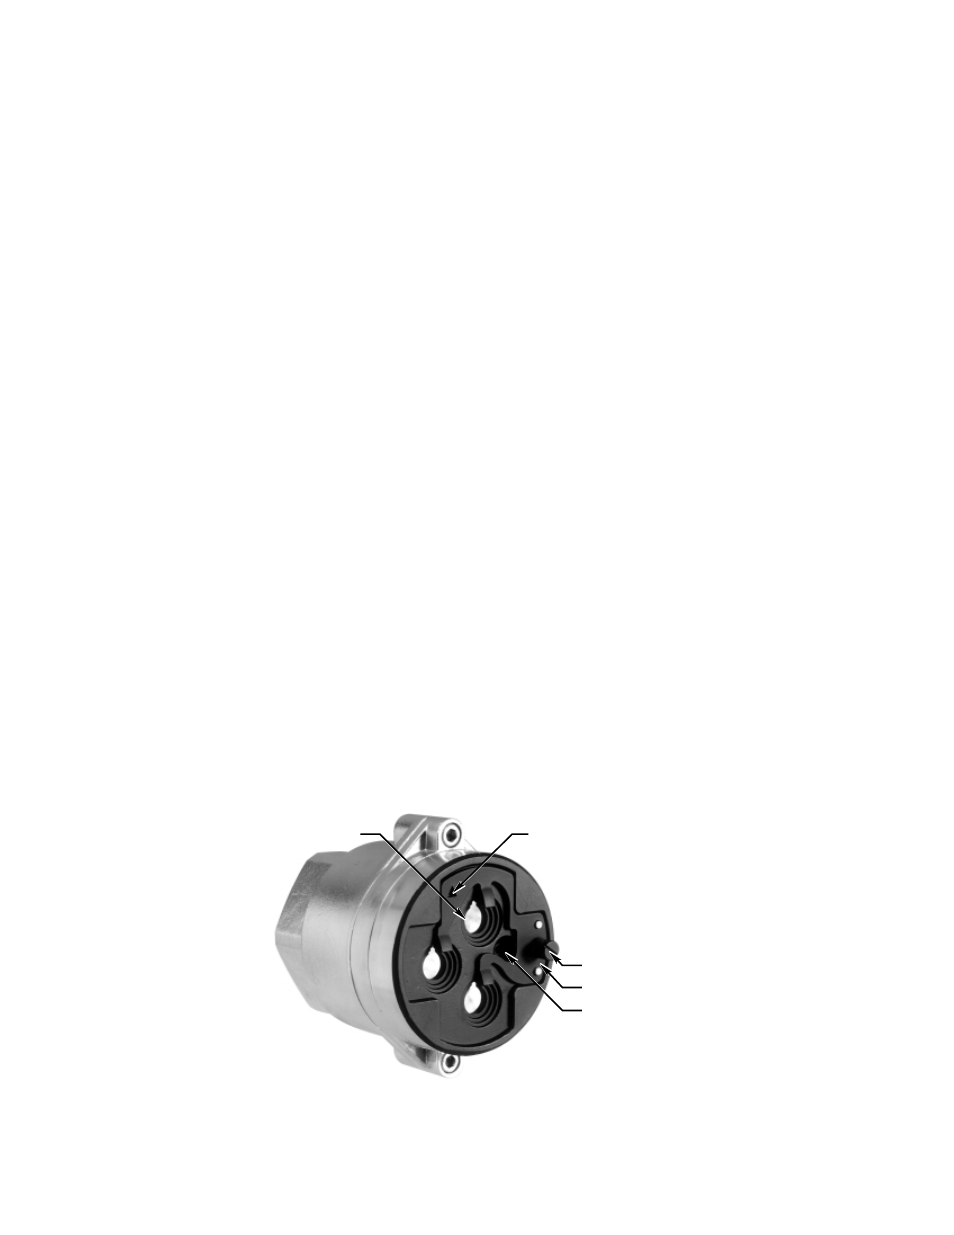 hight resolution of mounting and wiring procedure det tronics x3300 protect ir multispectrum ir flame detector with pulse output user manual page 6 27